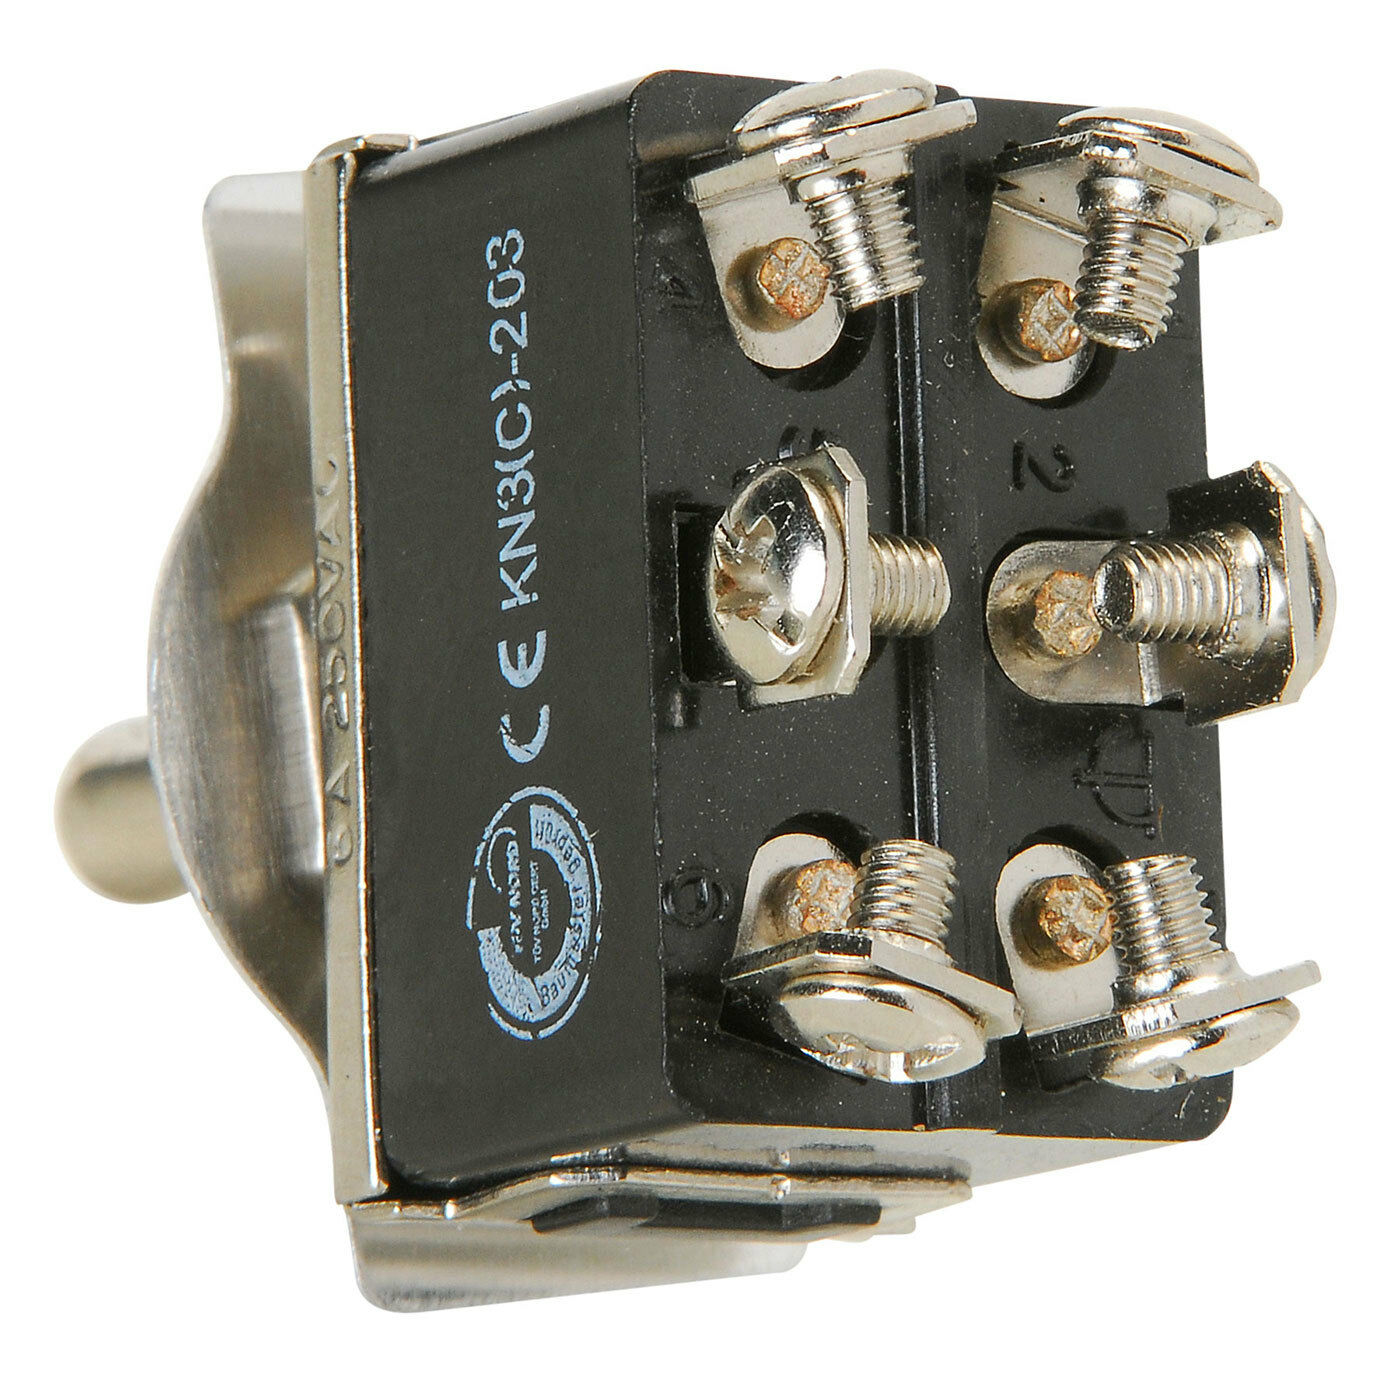 Dpdt Medium Duty Toggle Switch Center Off 844632075490